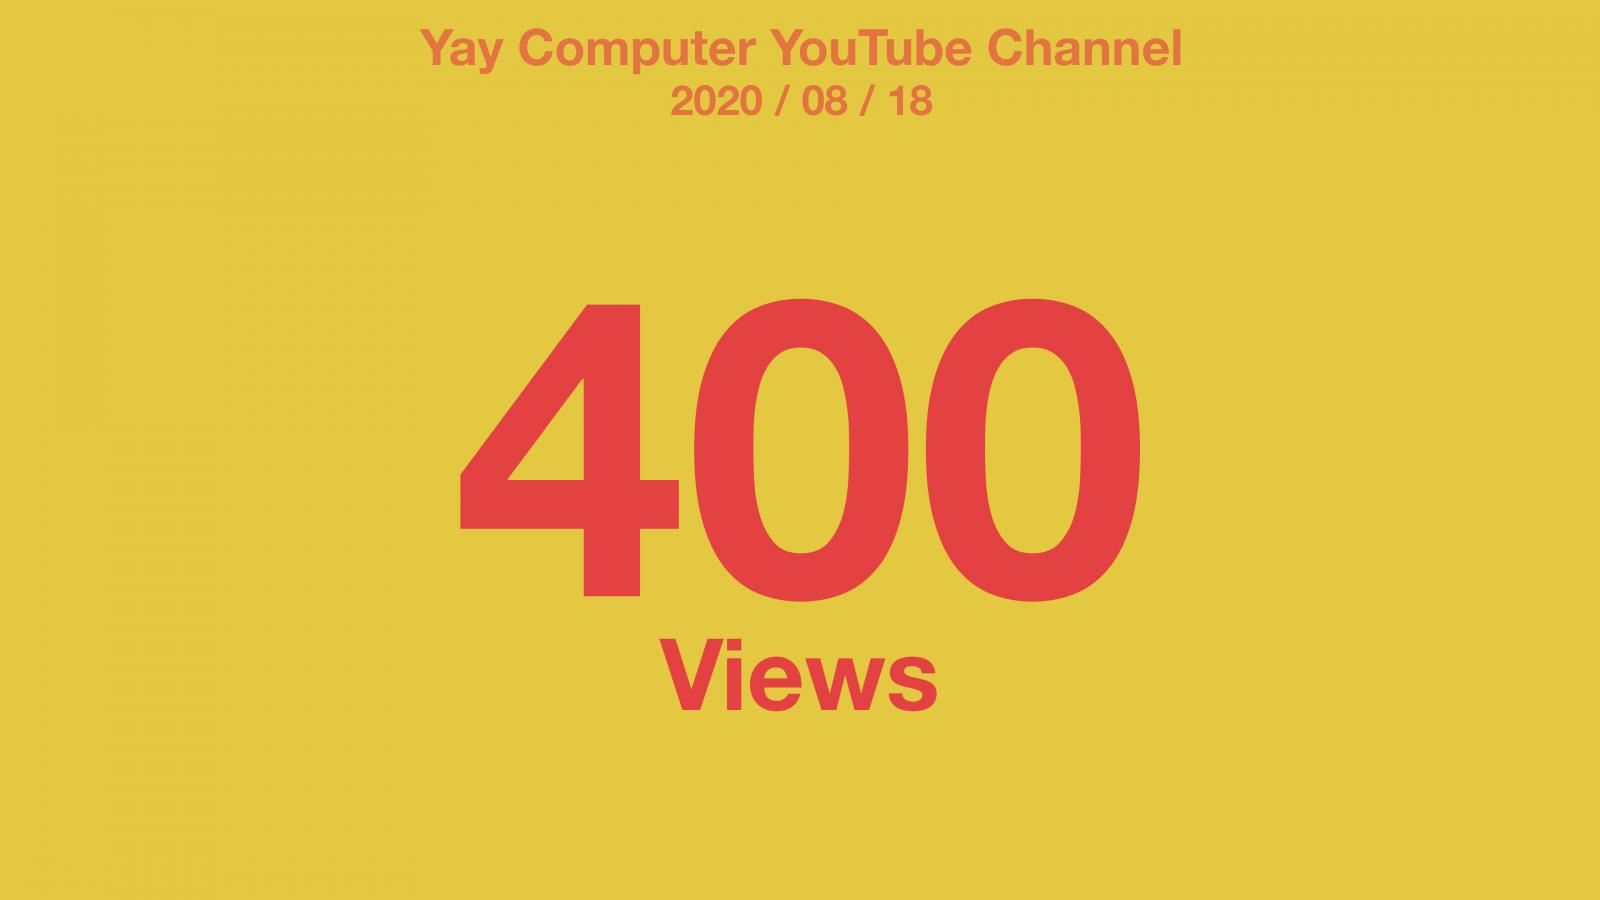 Yellow background with red text: Yay Computer YouTube Channel 2020/08/18 400 Views